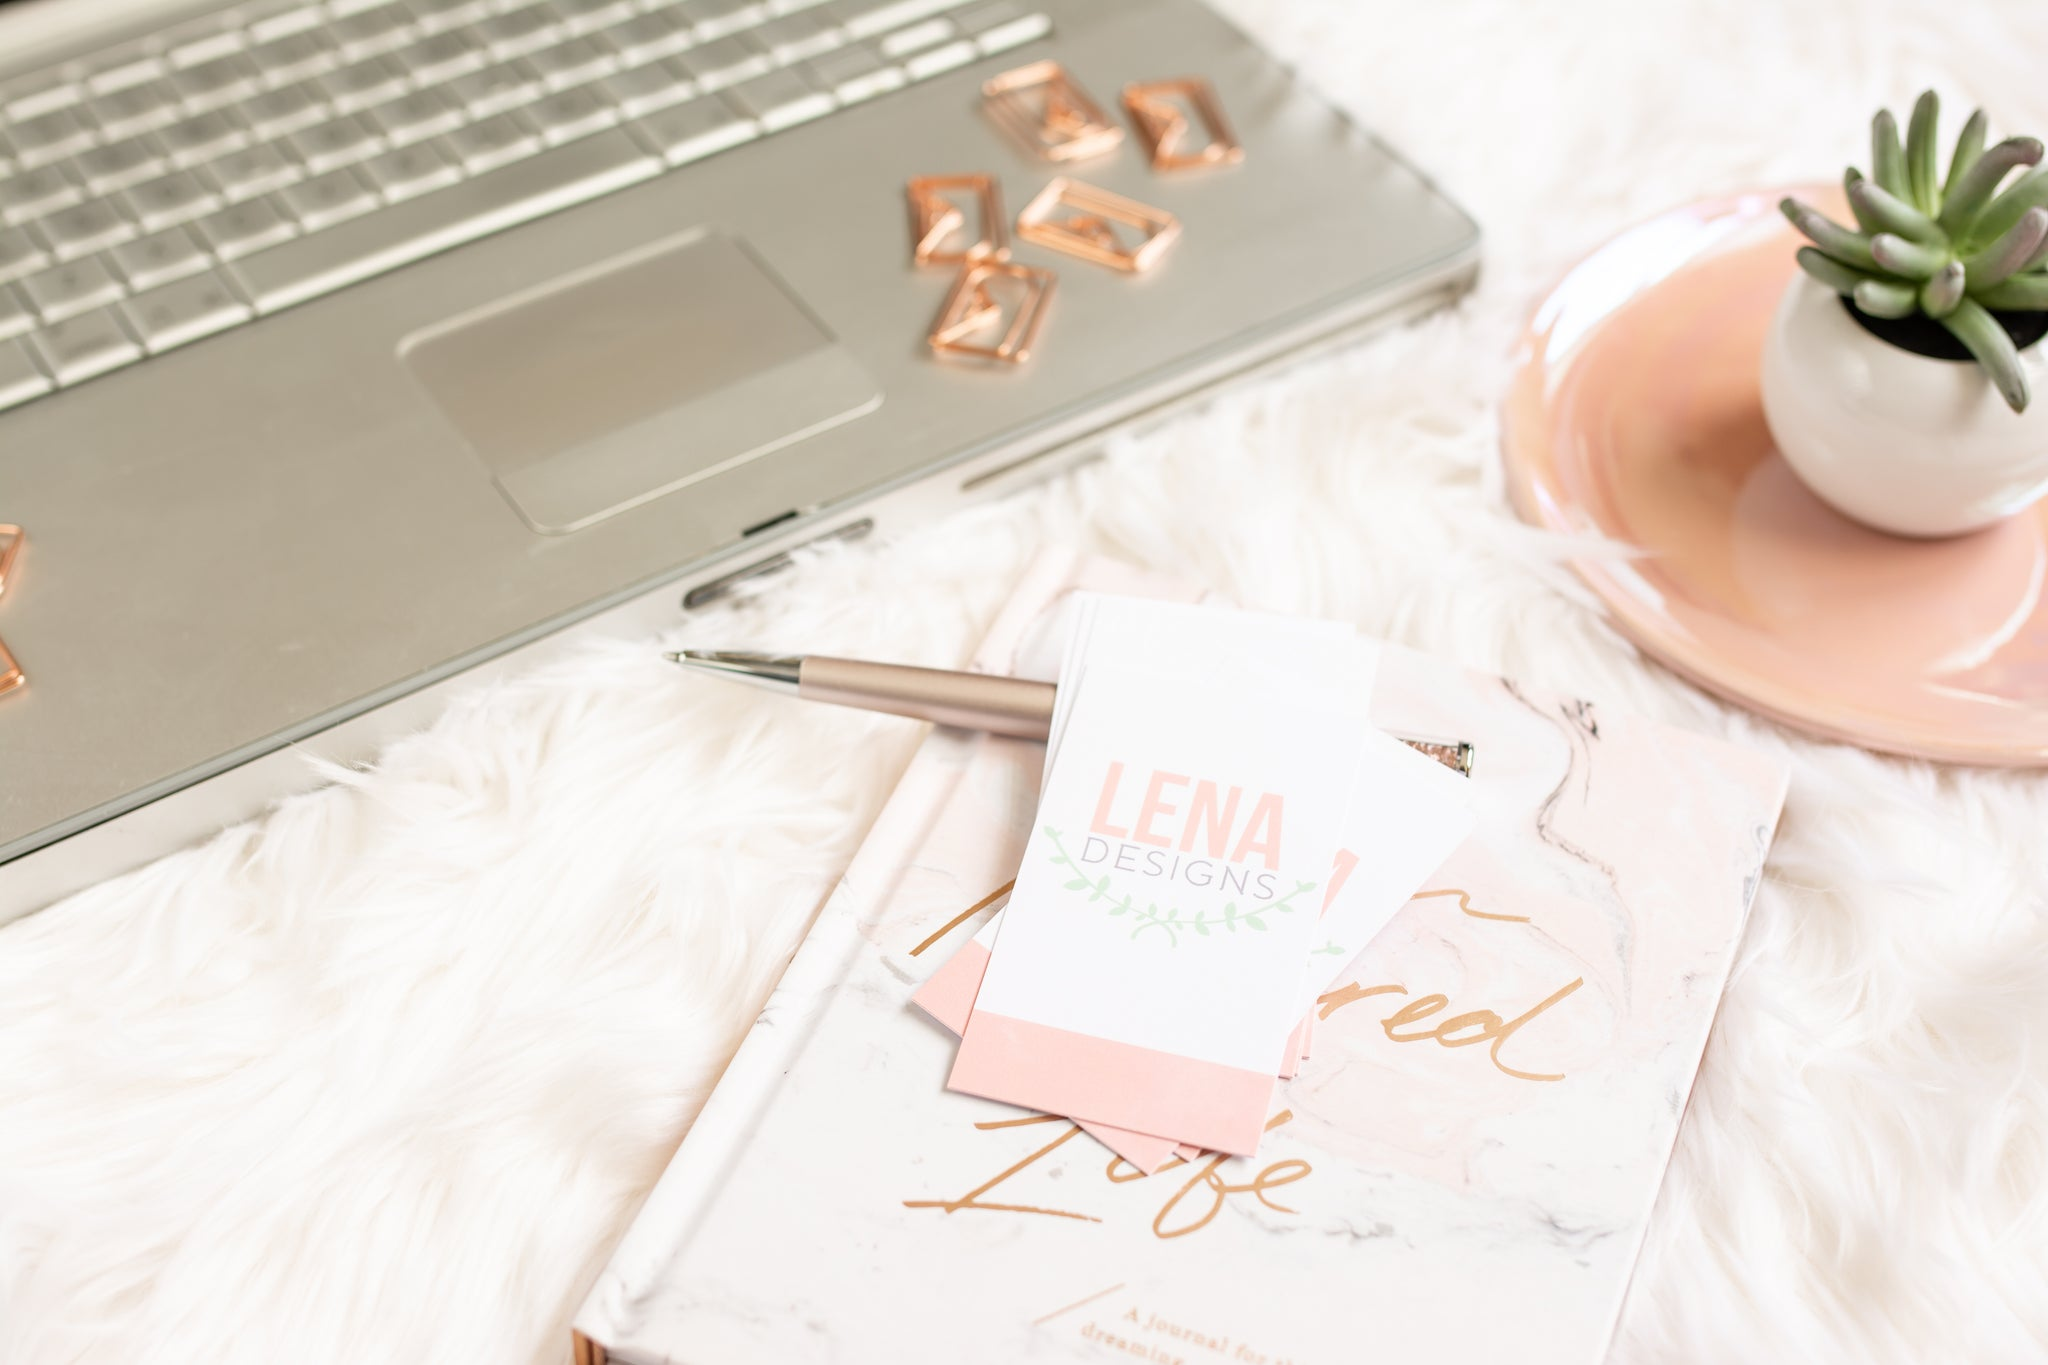 Lena Designs business cards in styled scene with laptop.